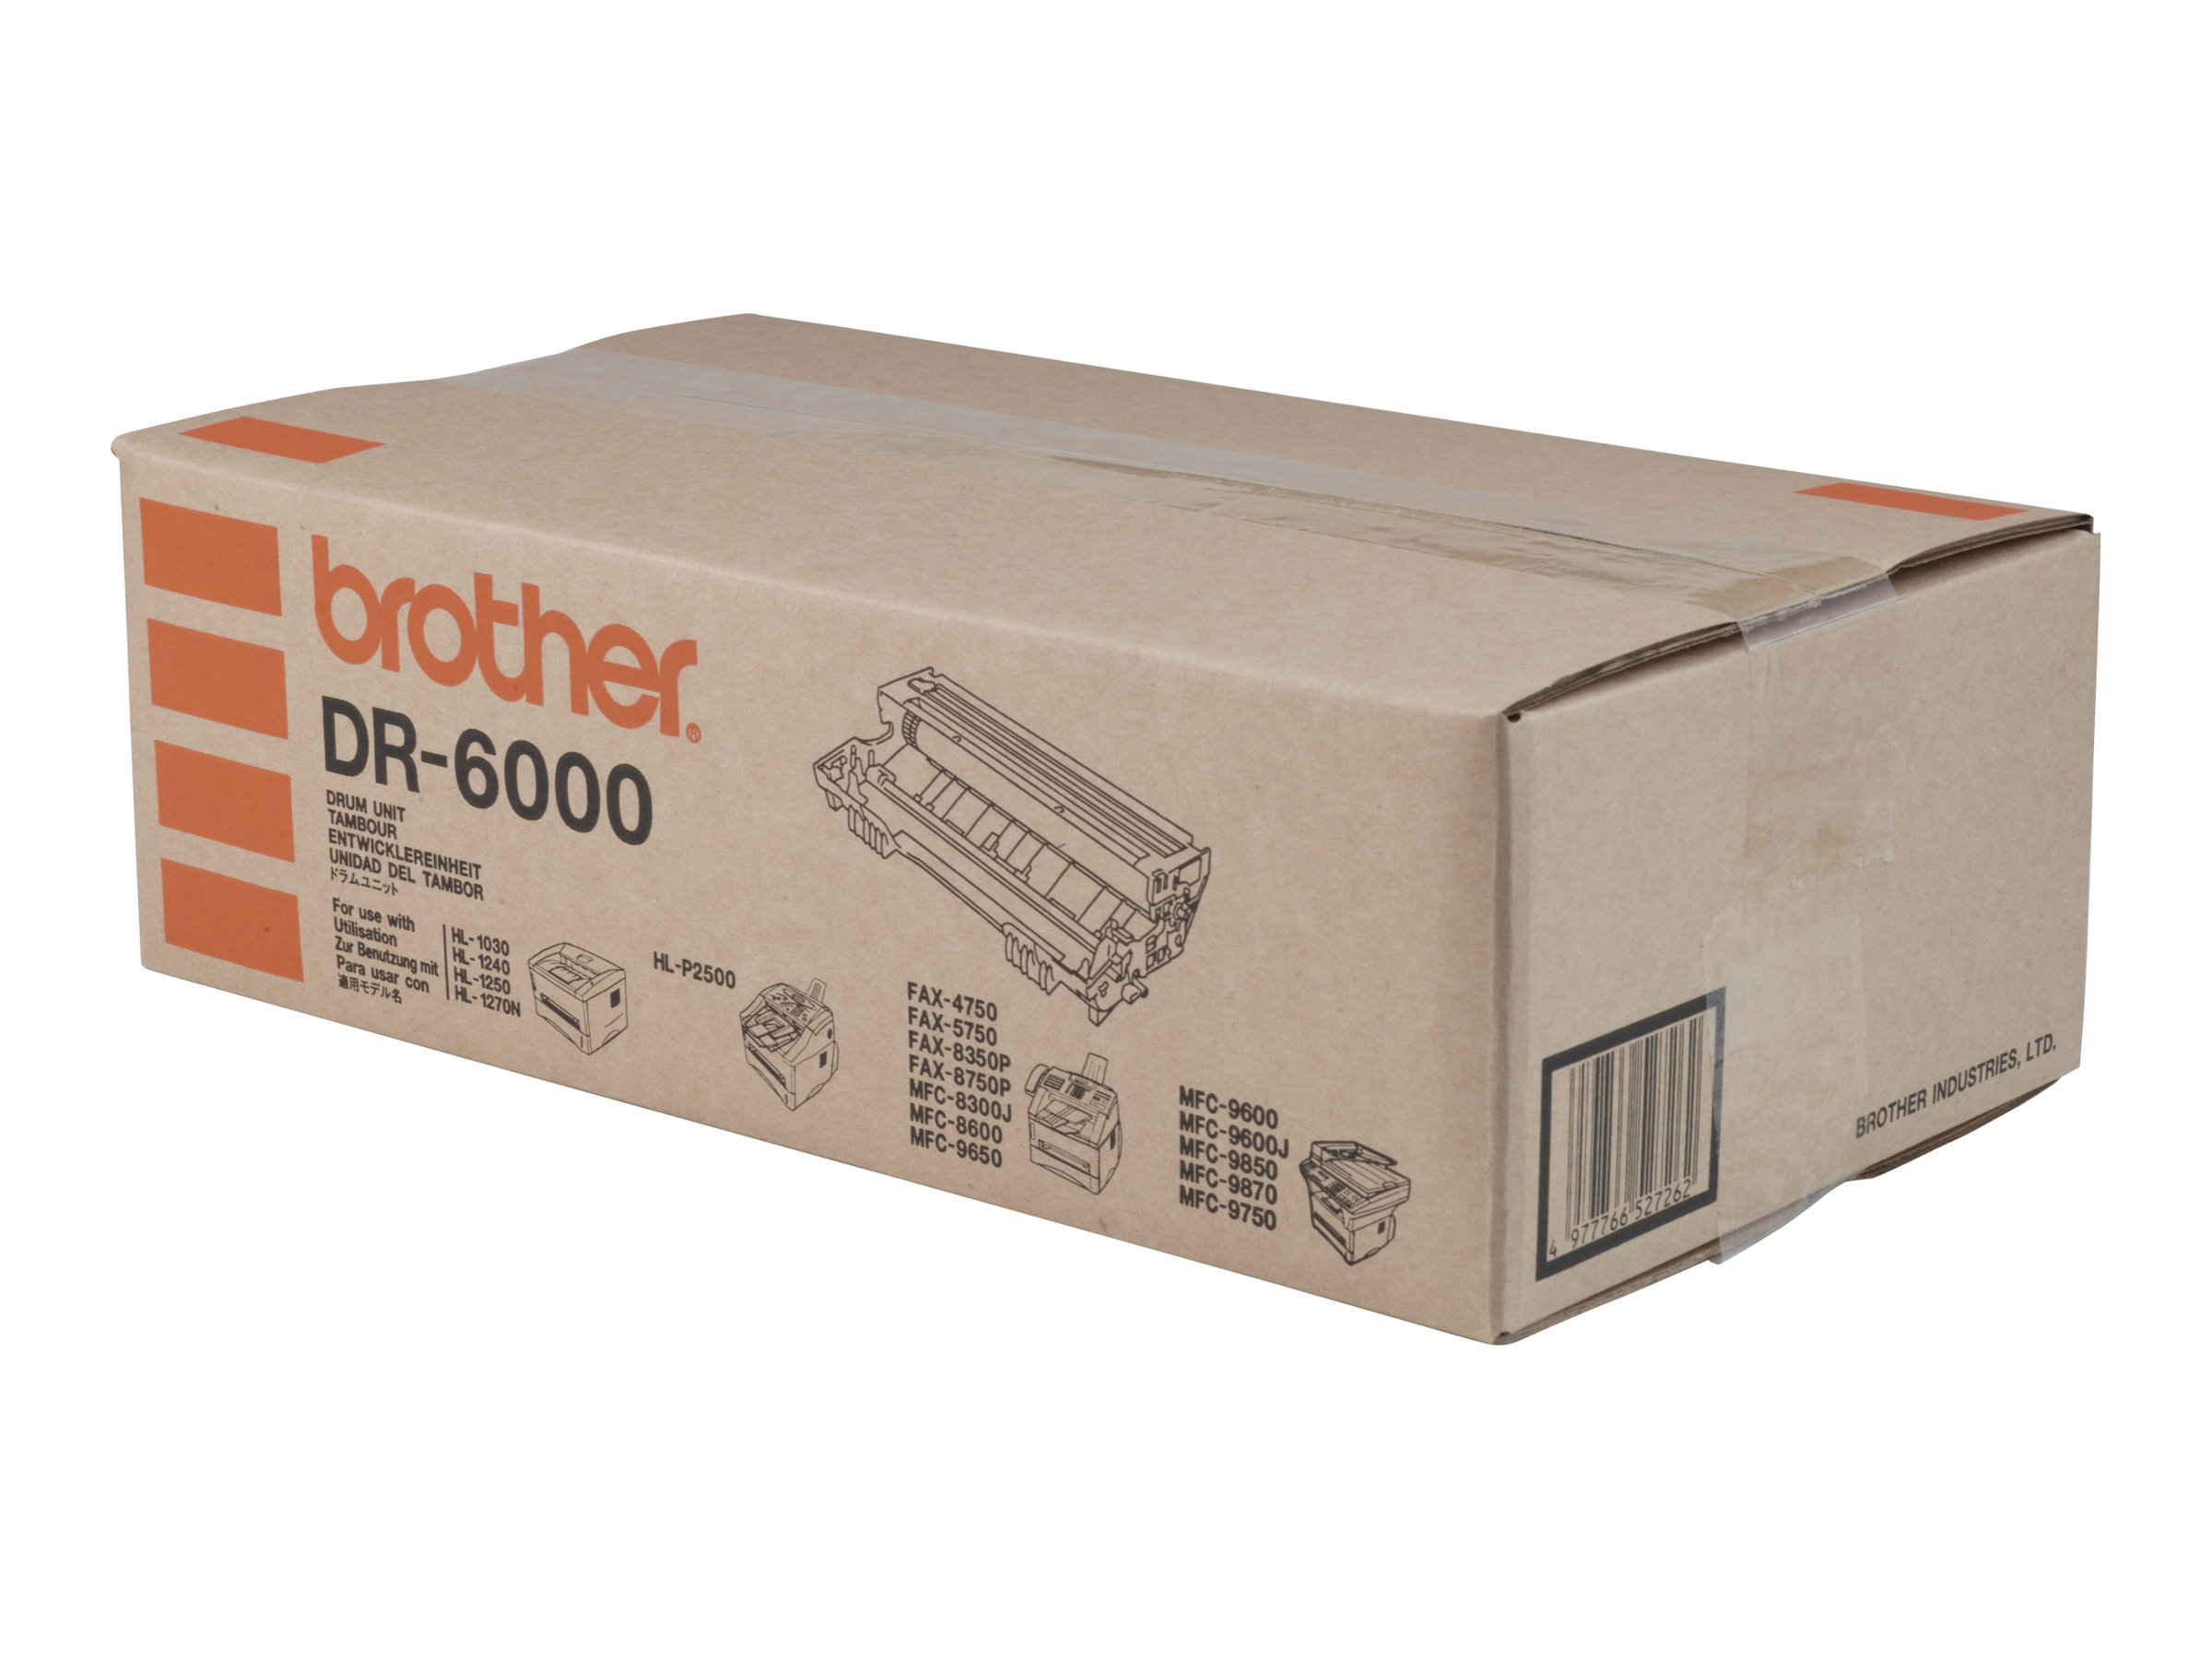 Brother DR6000 - Trommel-Kit - für Brother HL-1030, 1230, 1240, 1250, 1270, 1430, 1440, 1450, 1470, MFC-8300, 8600, 9600